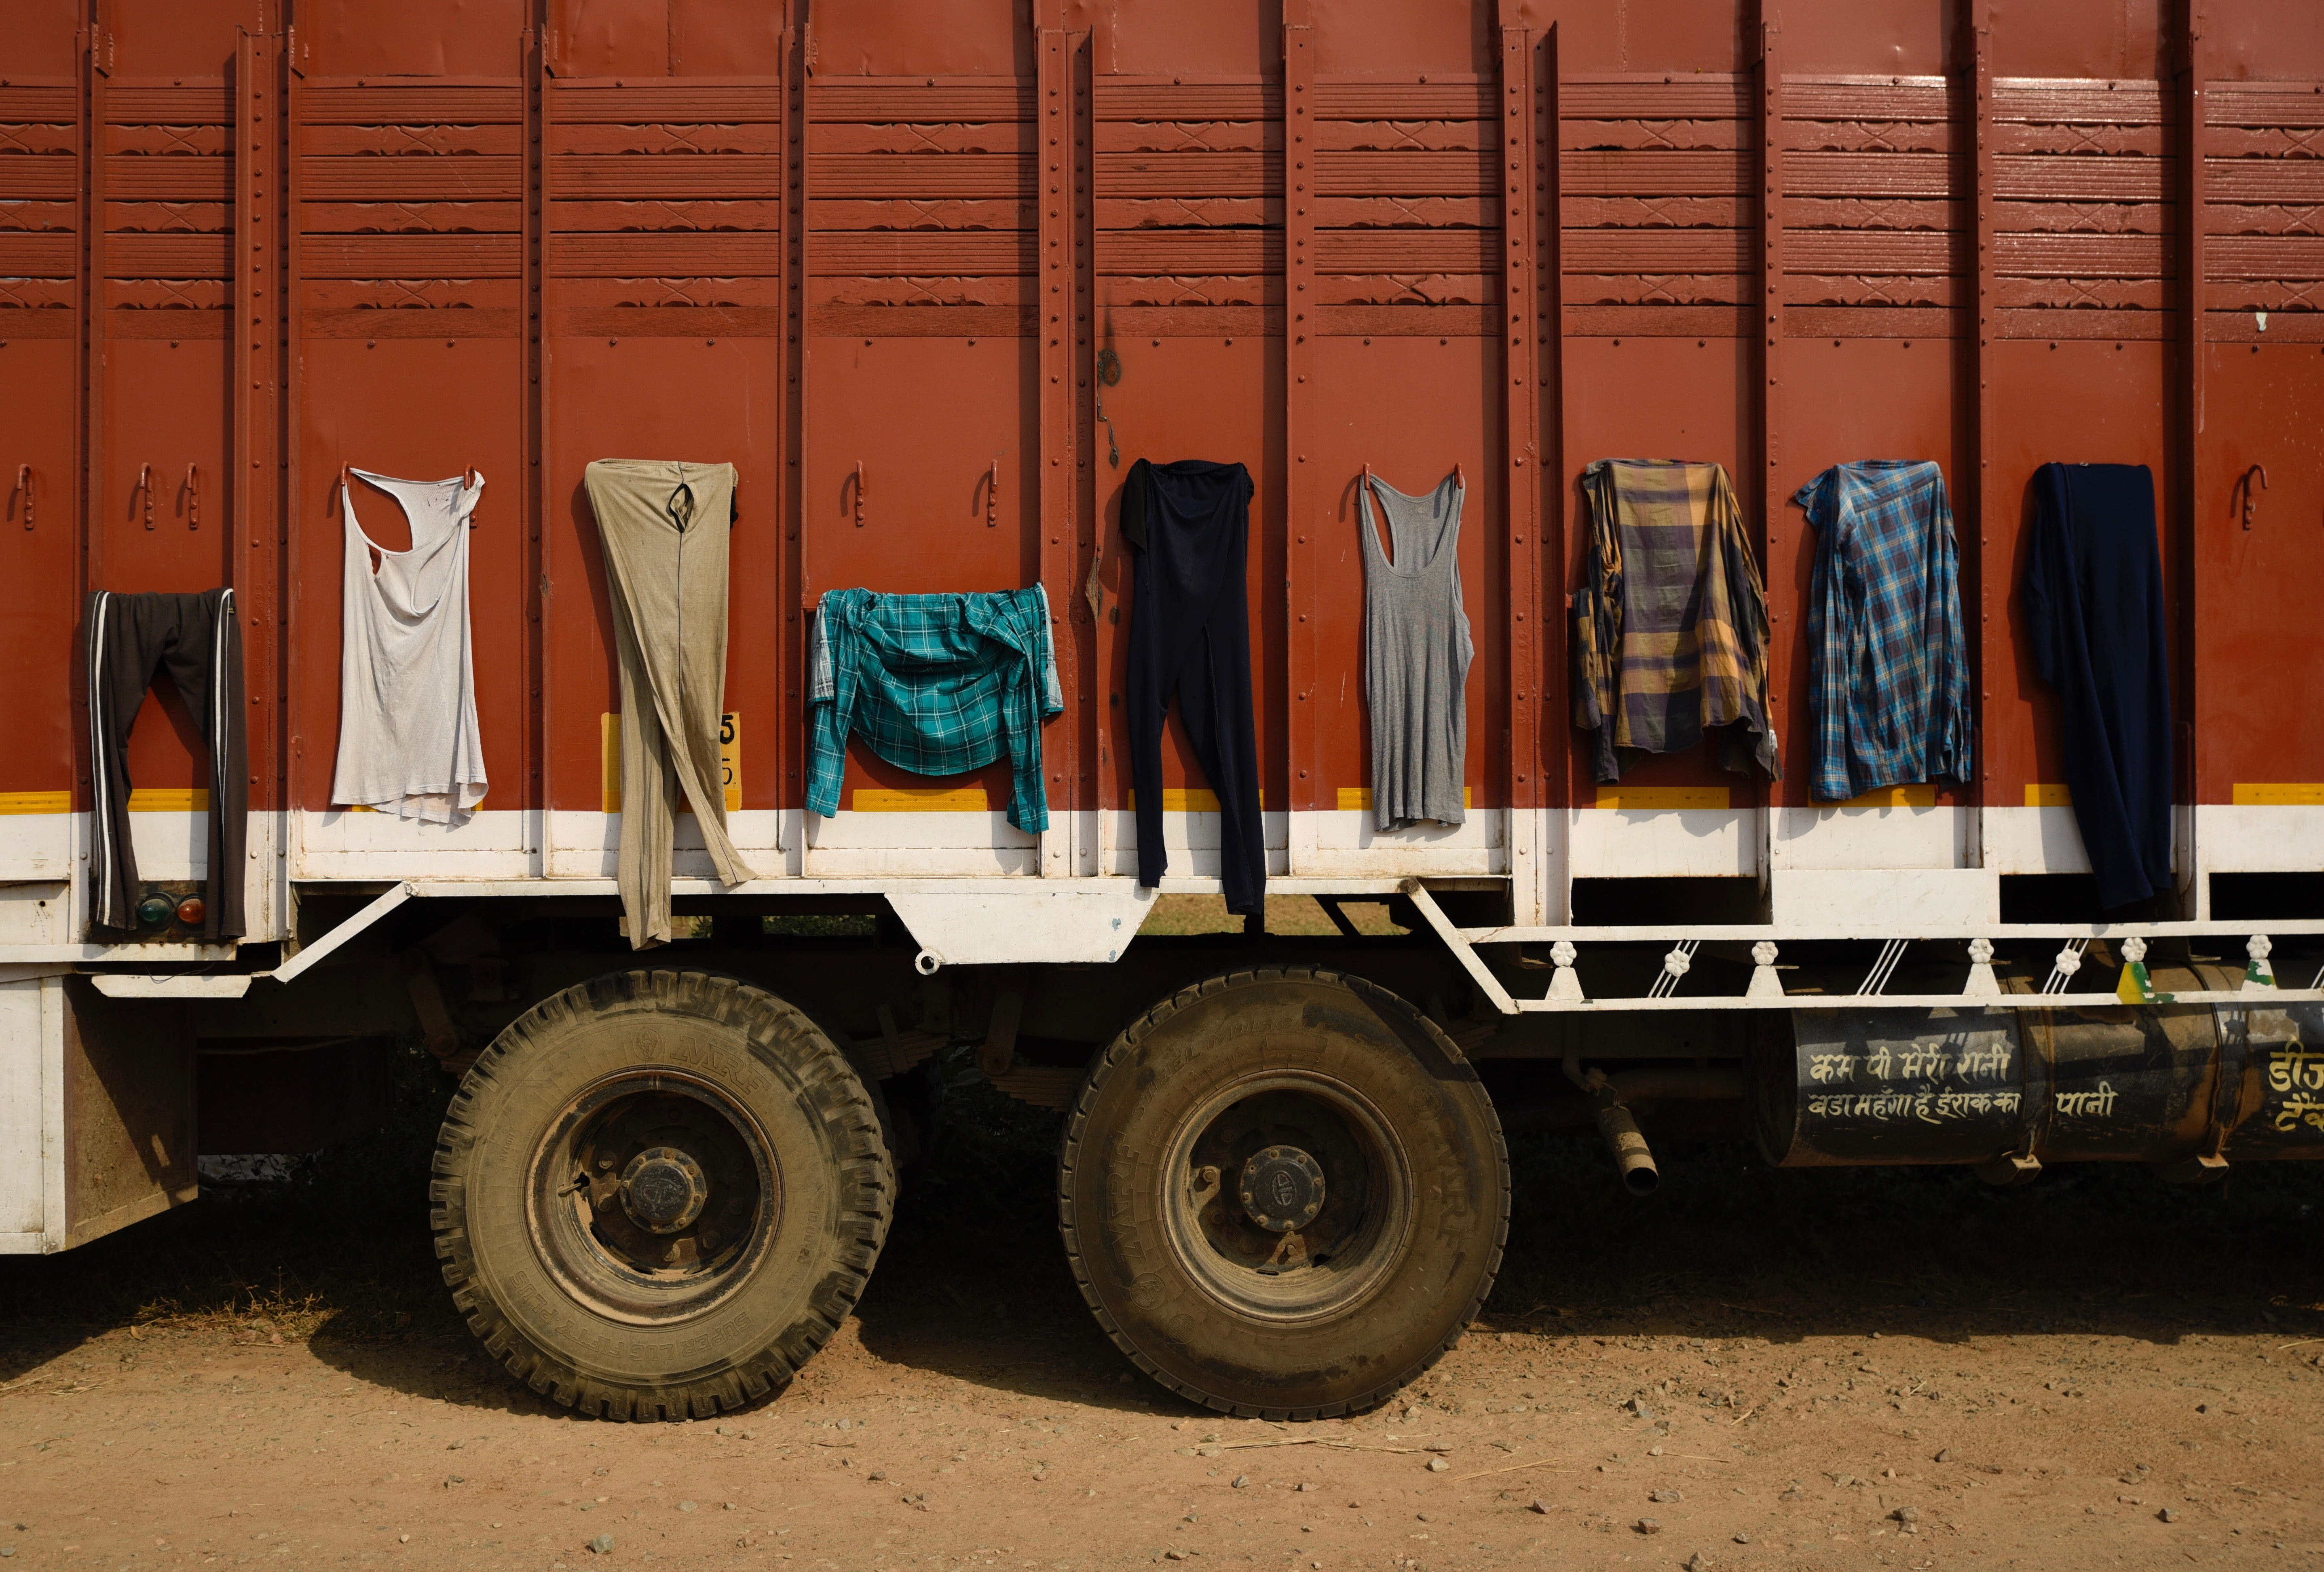 Clothes belonging to truck drivers are hung out to dry on the body of a truck in Mathura, India - AP